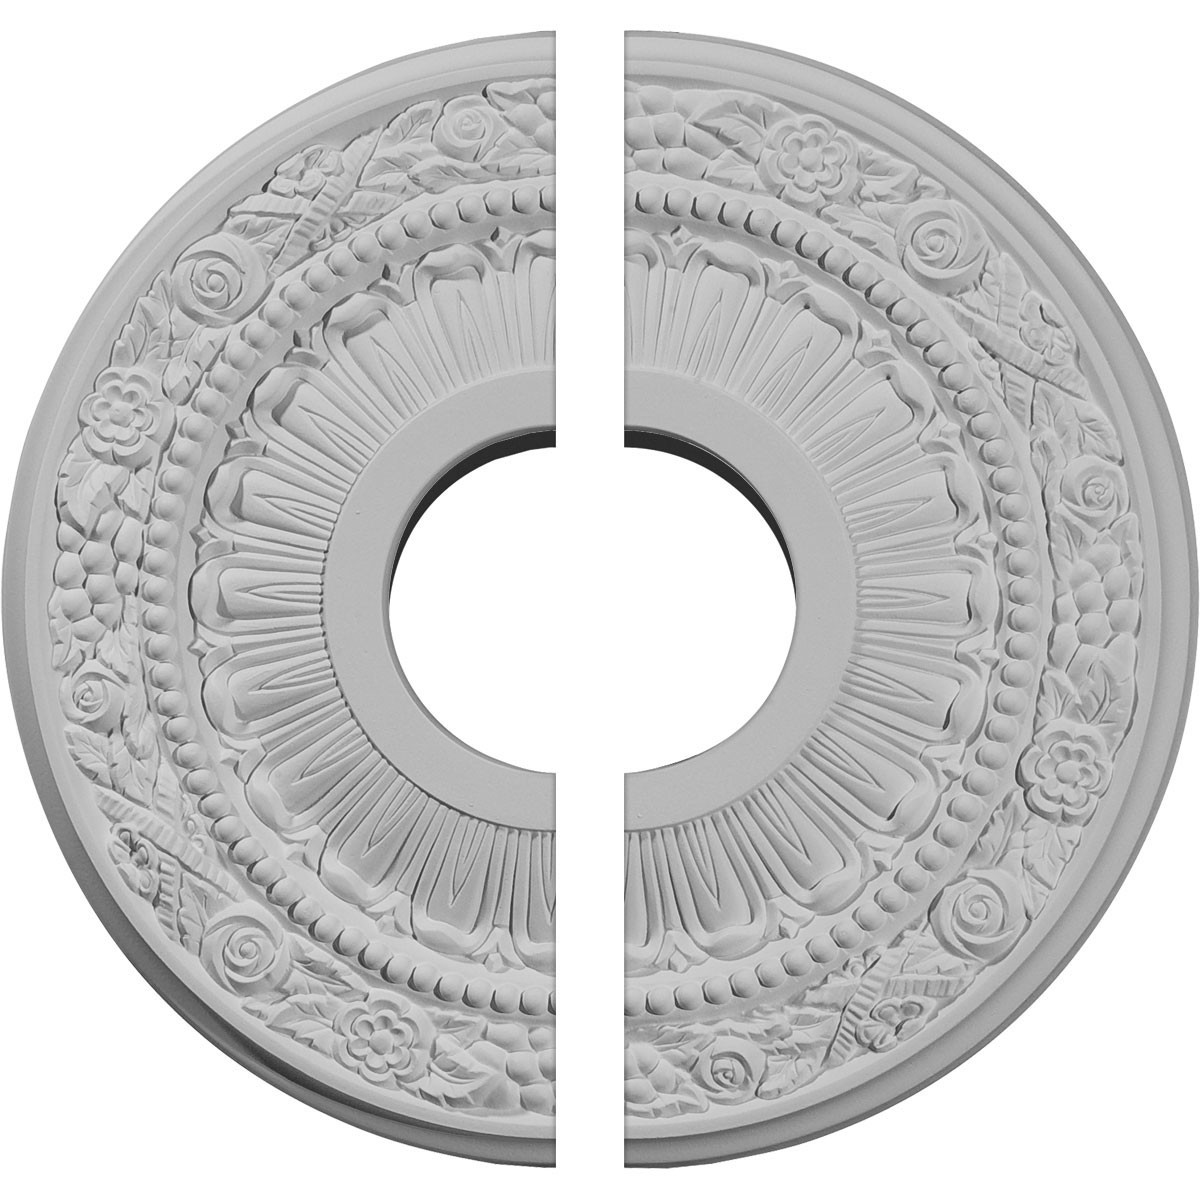 """EM-CM12NA2 - 12 1/8""""OD x 3 5/8""""ID x 7/8""""P Nadia Ceiling Medallion, Two Piece (Fits Canopies up to 4 7/8"""")"""